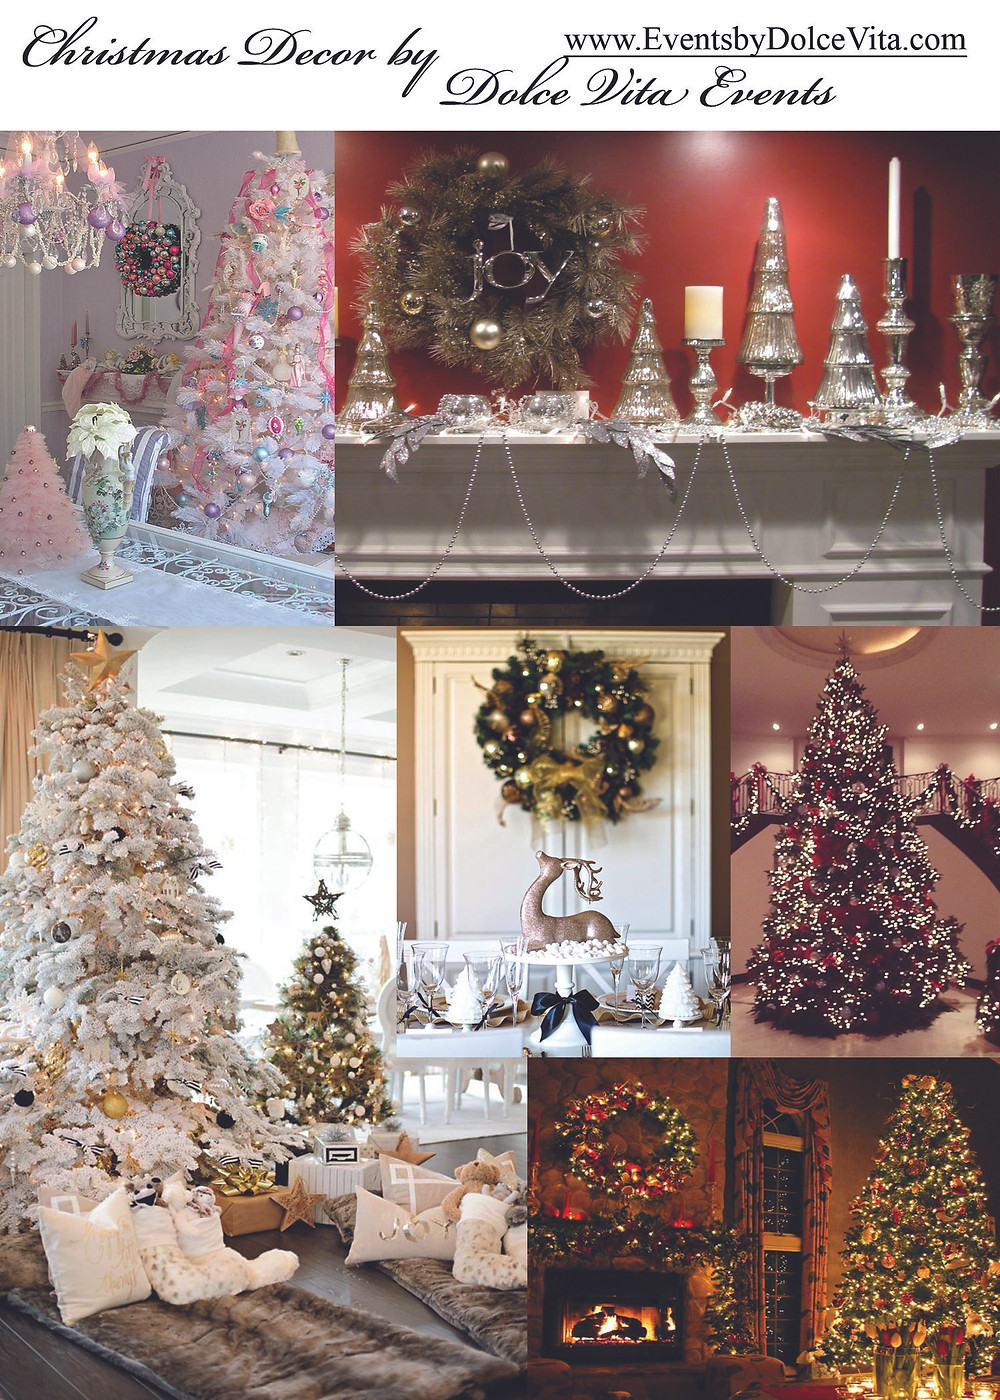 Christmas Decor and design services by Dolce Vita Events